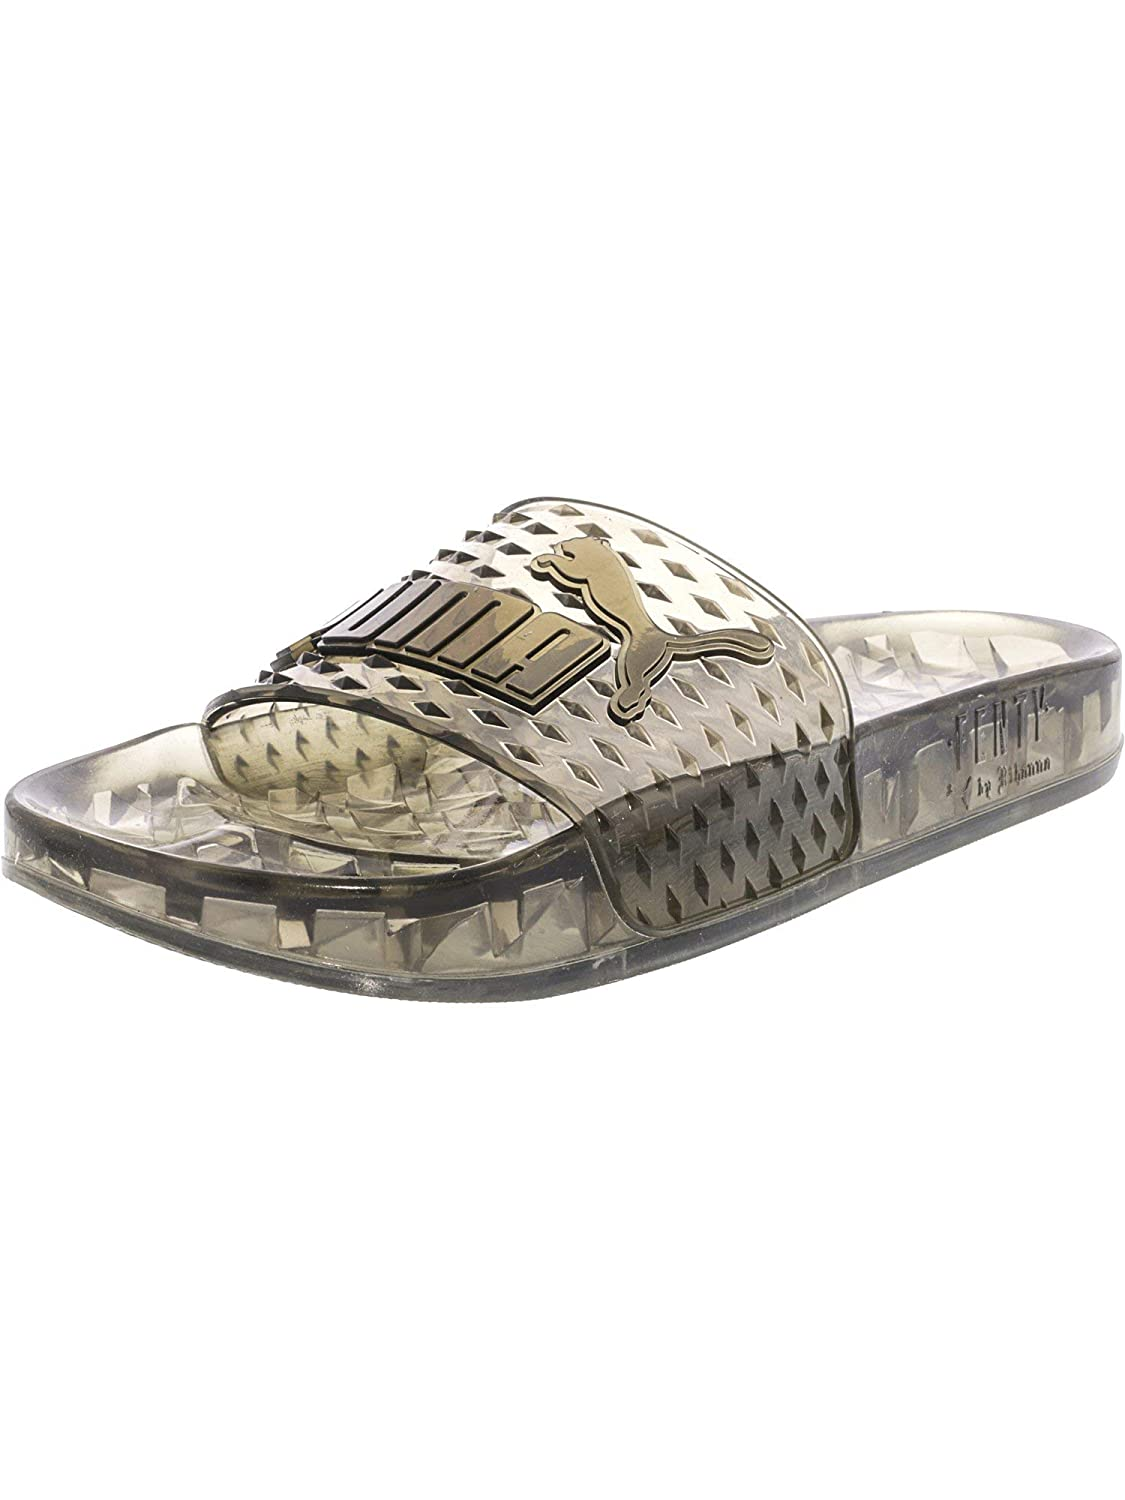 buy online 38c7a 34f8c Amazon.com   PUMA Fenty by Rihanna Womens Jelly Slide Sandal Shoes   Sandals